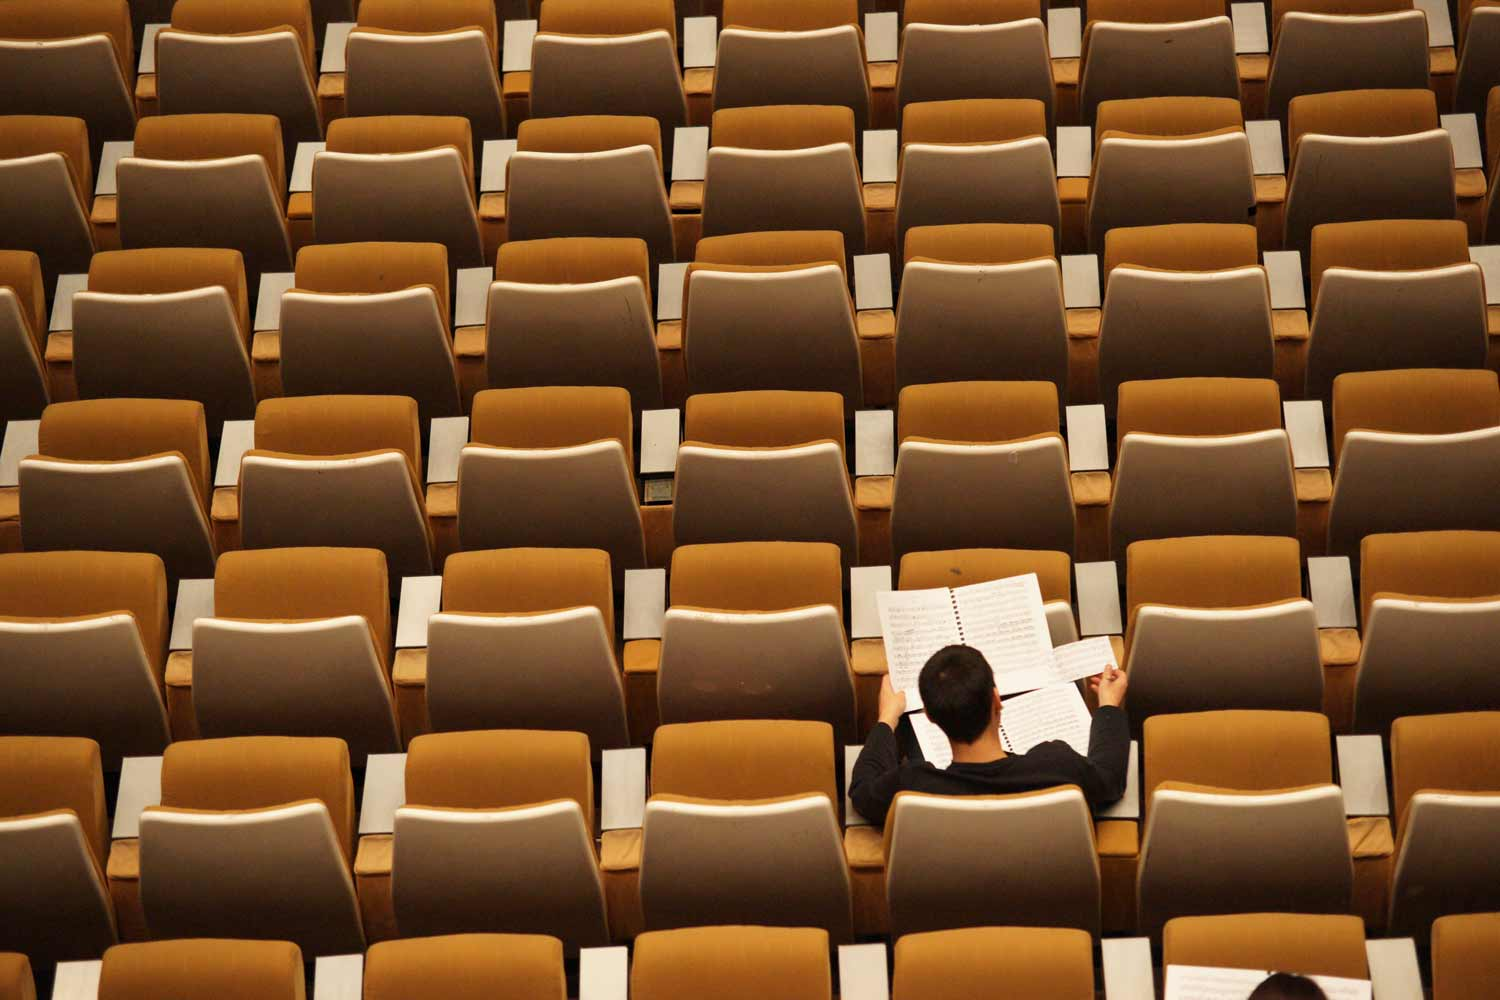 a student sitting in a lecture hall